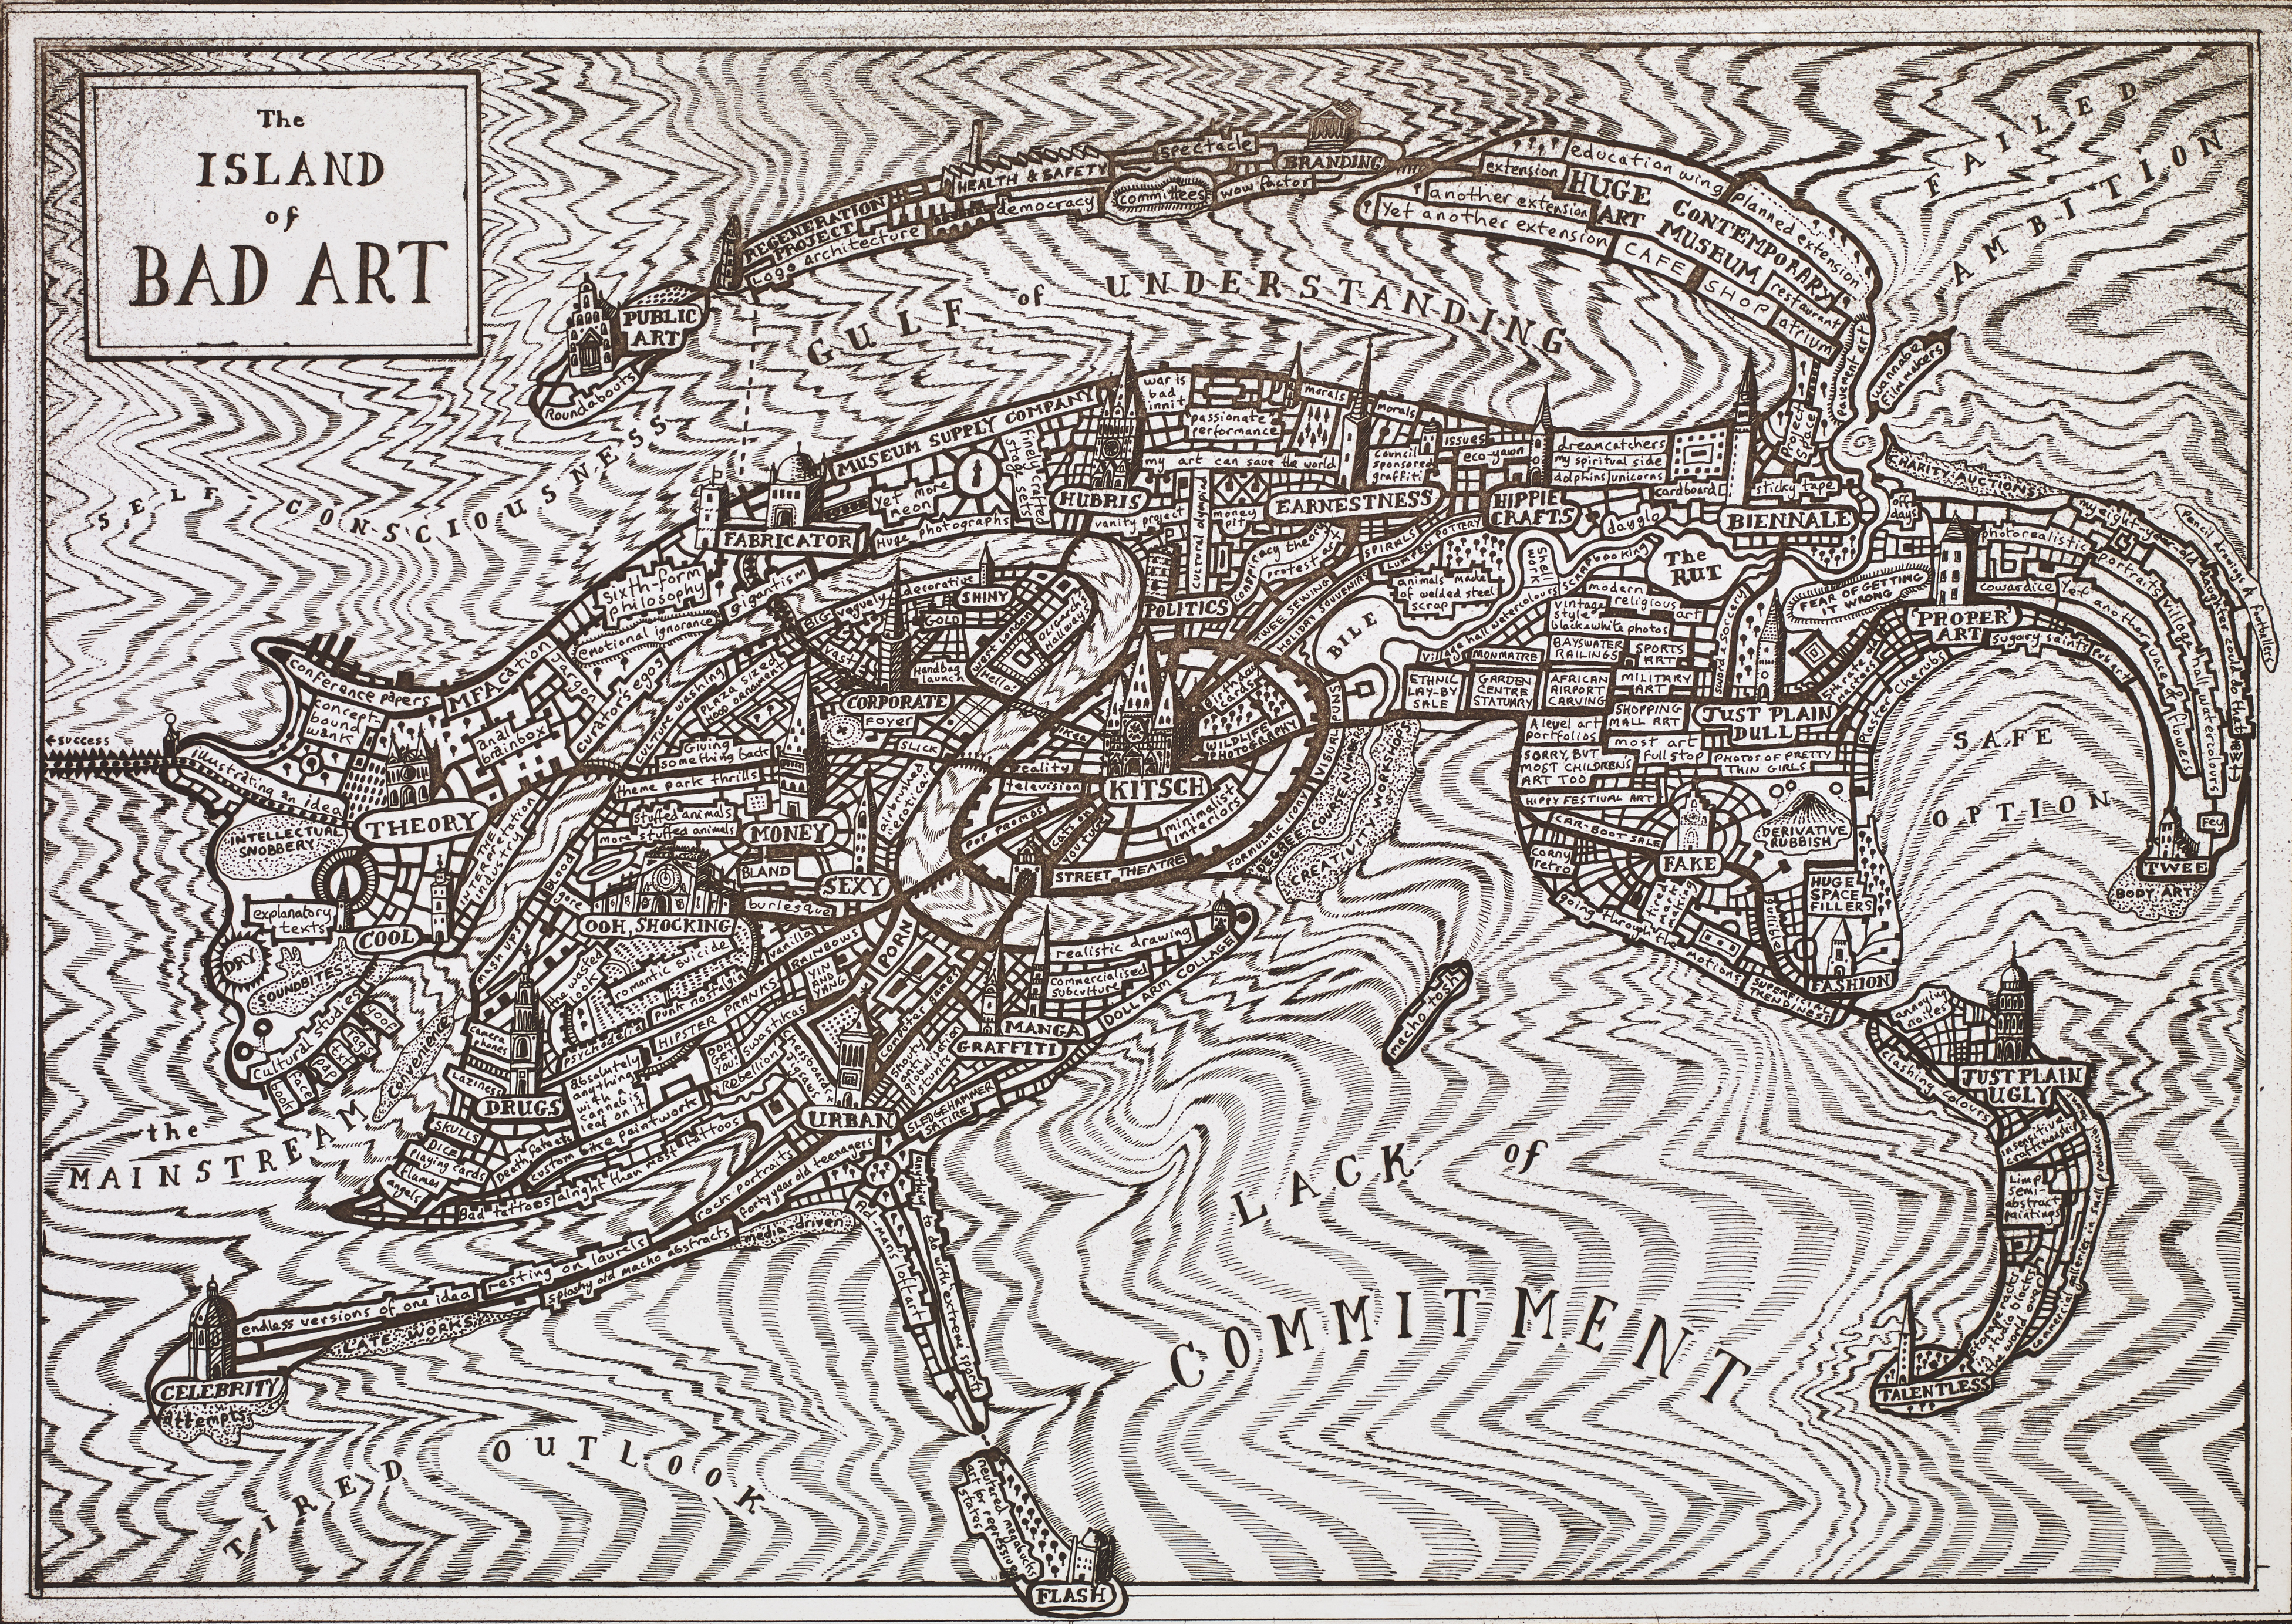 THE ISLAND OF BAD ART, ETCHING PRINTED WITH TONE ON WOVEN PAPER, 41.2 X 23.2 CM, 2013